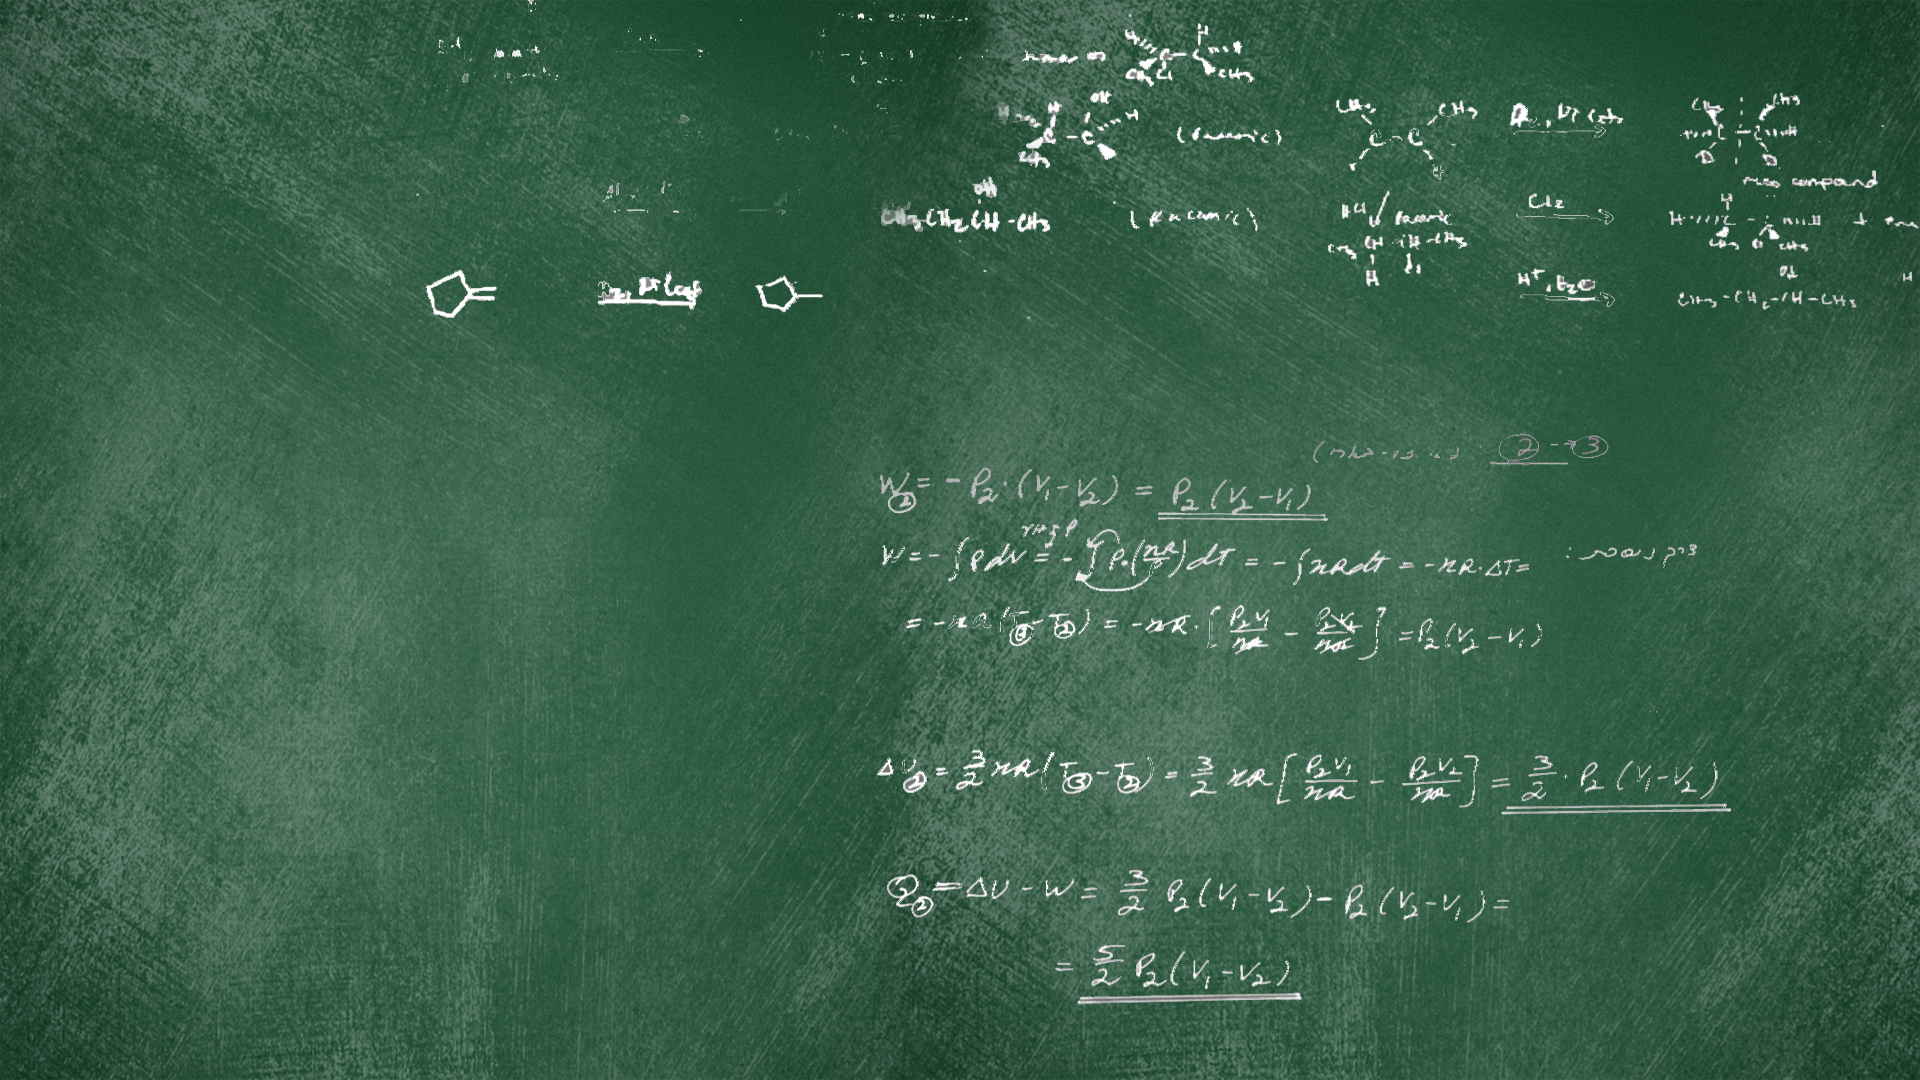 Blackboard clipart wallpaper. Beautiful wallpapers backgrounds images